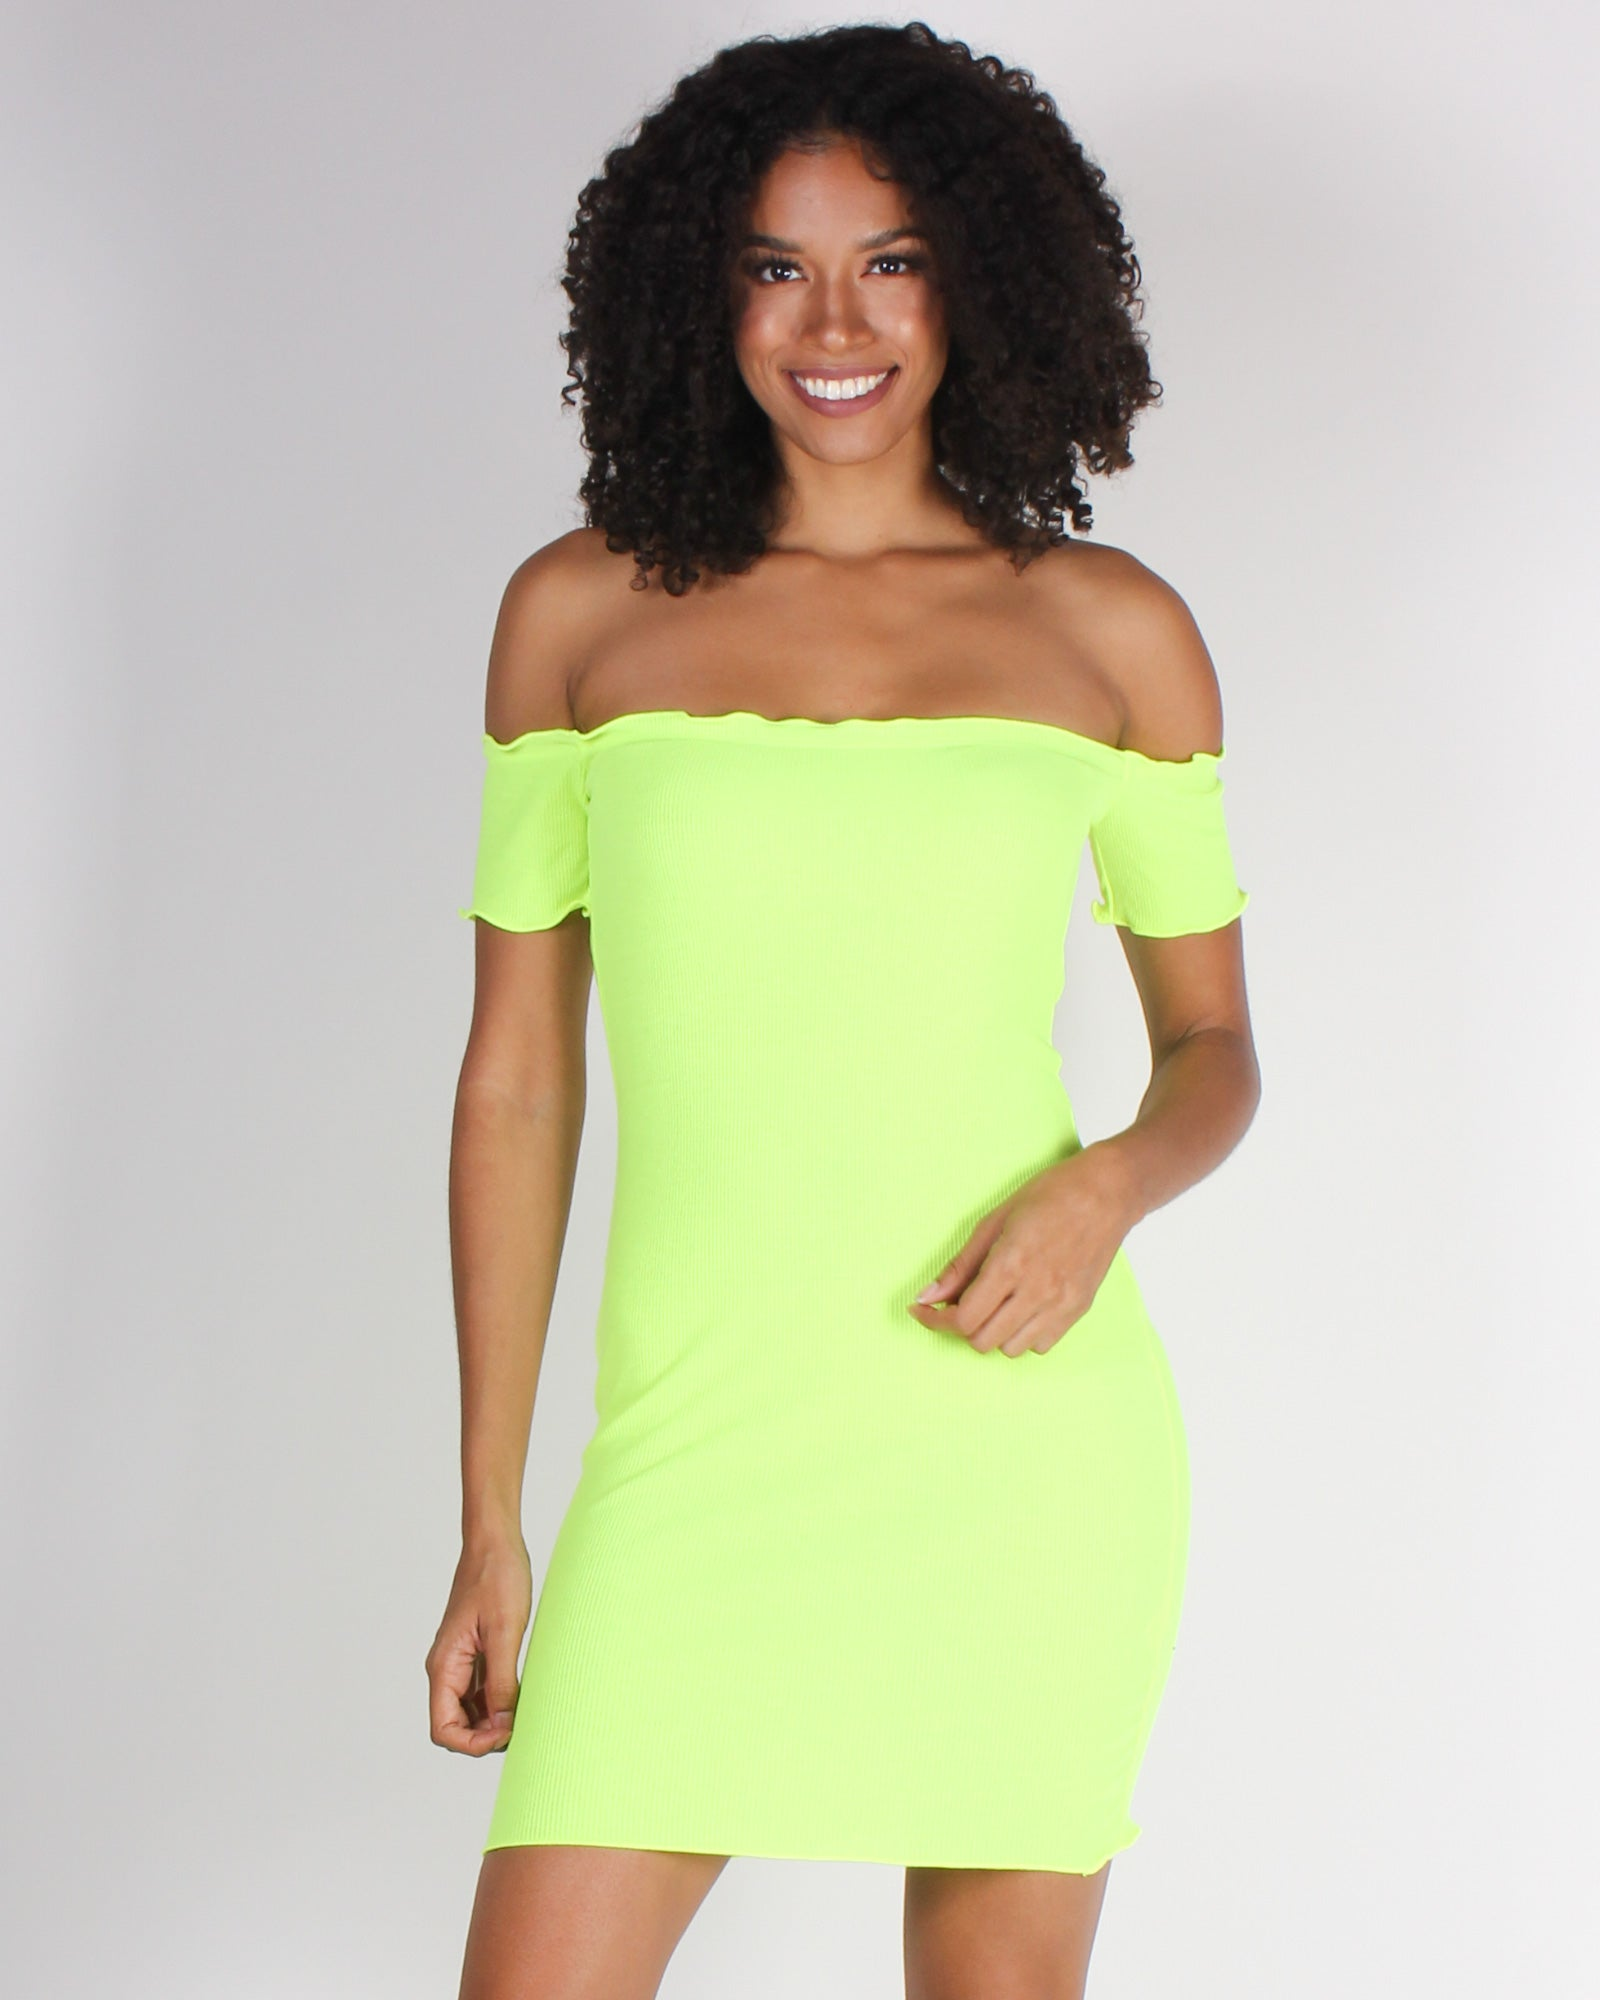 Fashion Q Shop Q Pretty and Witty and Bright Off the Shoulder Bodycon Dress (Neon Green) RD31781